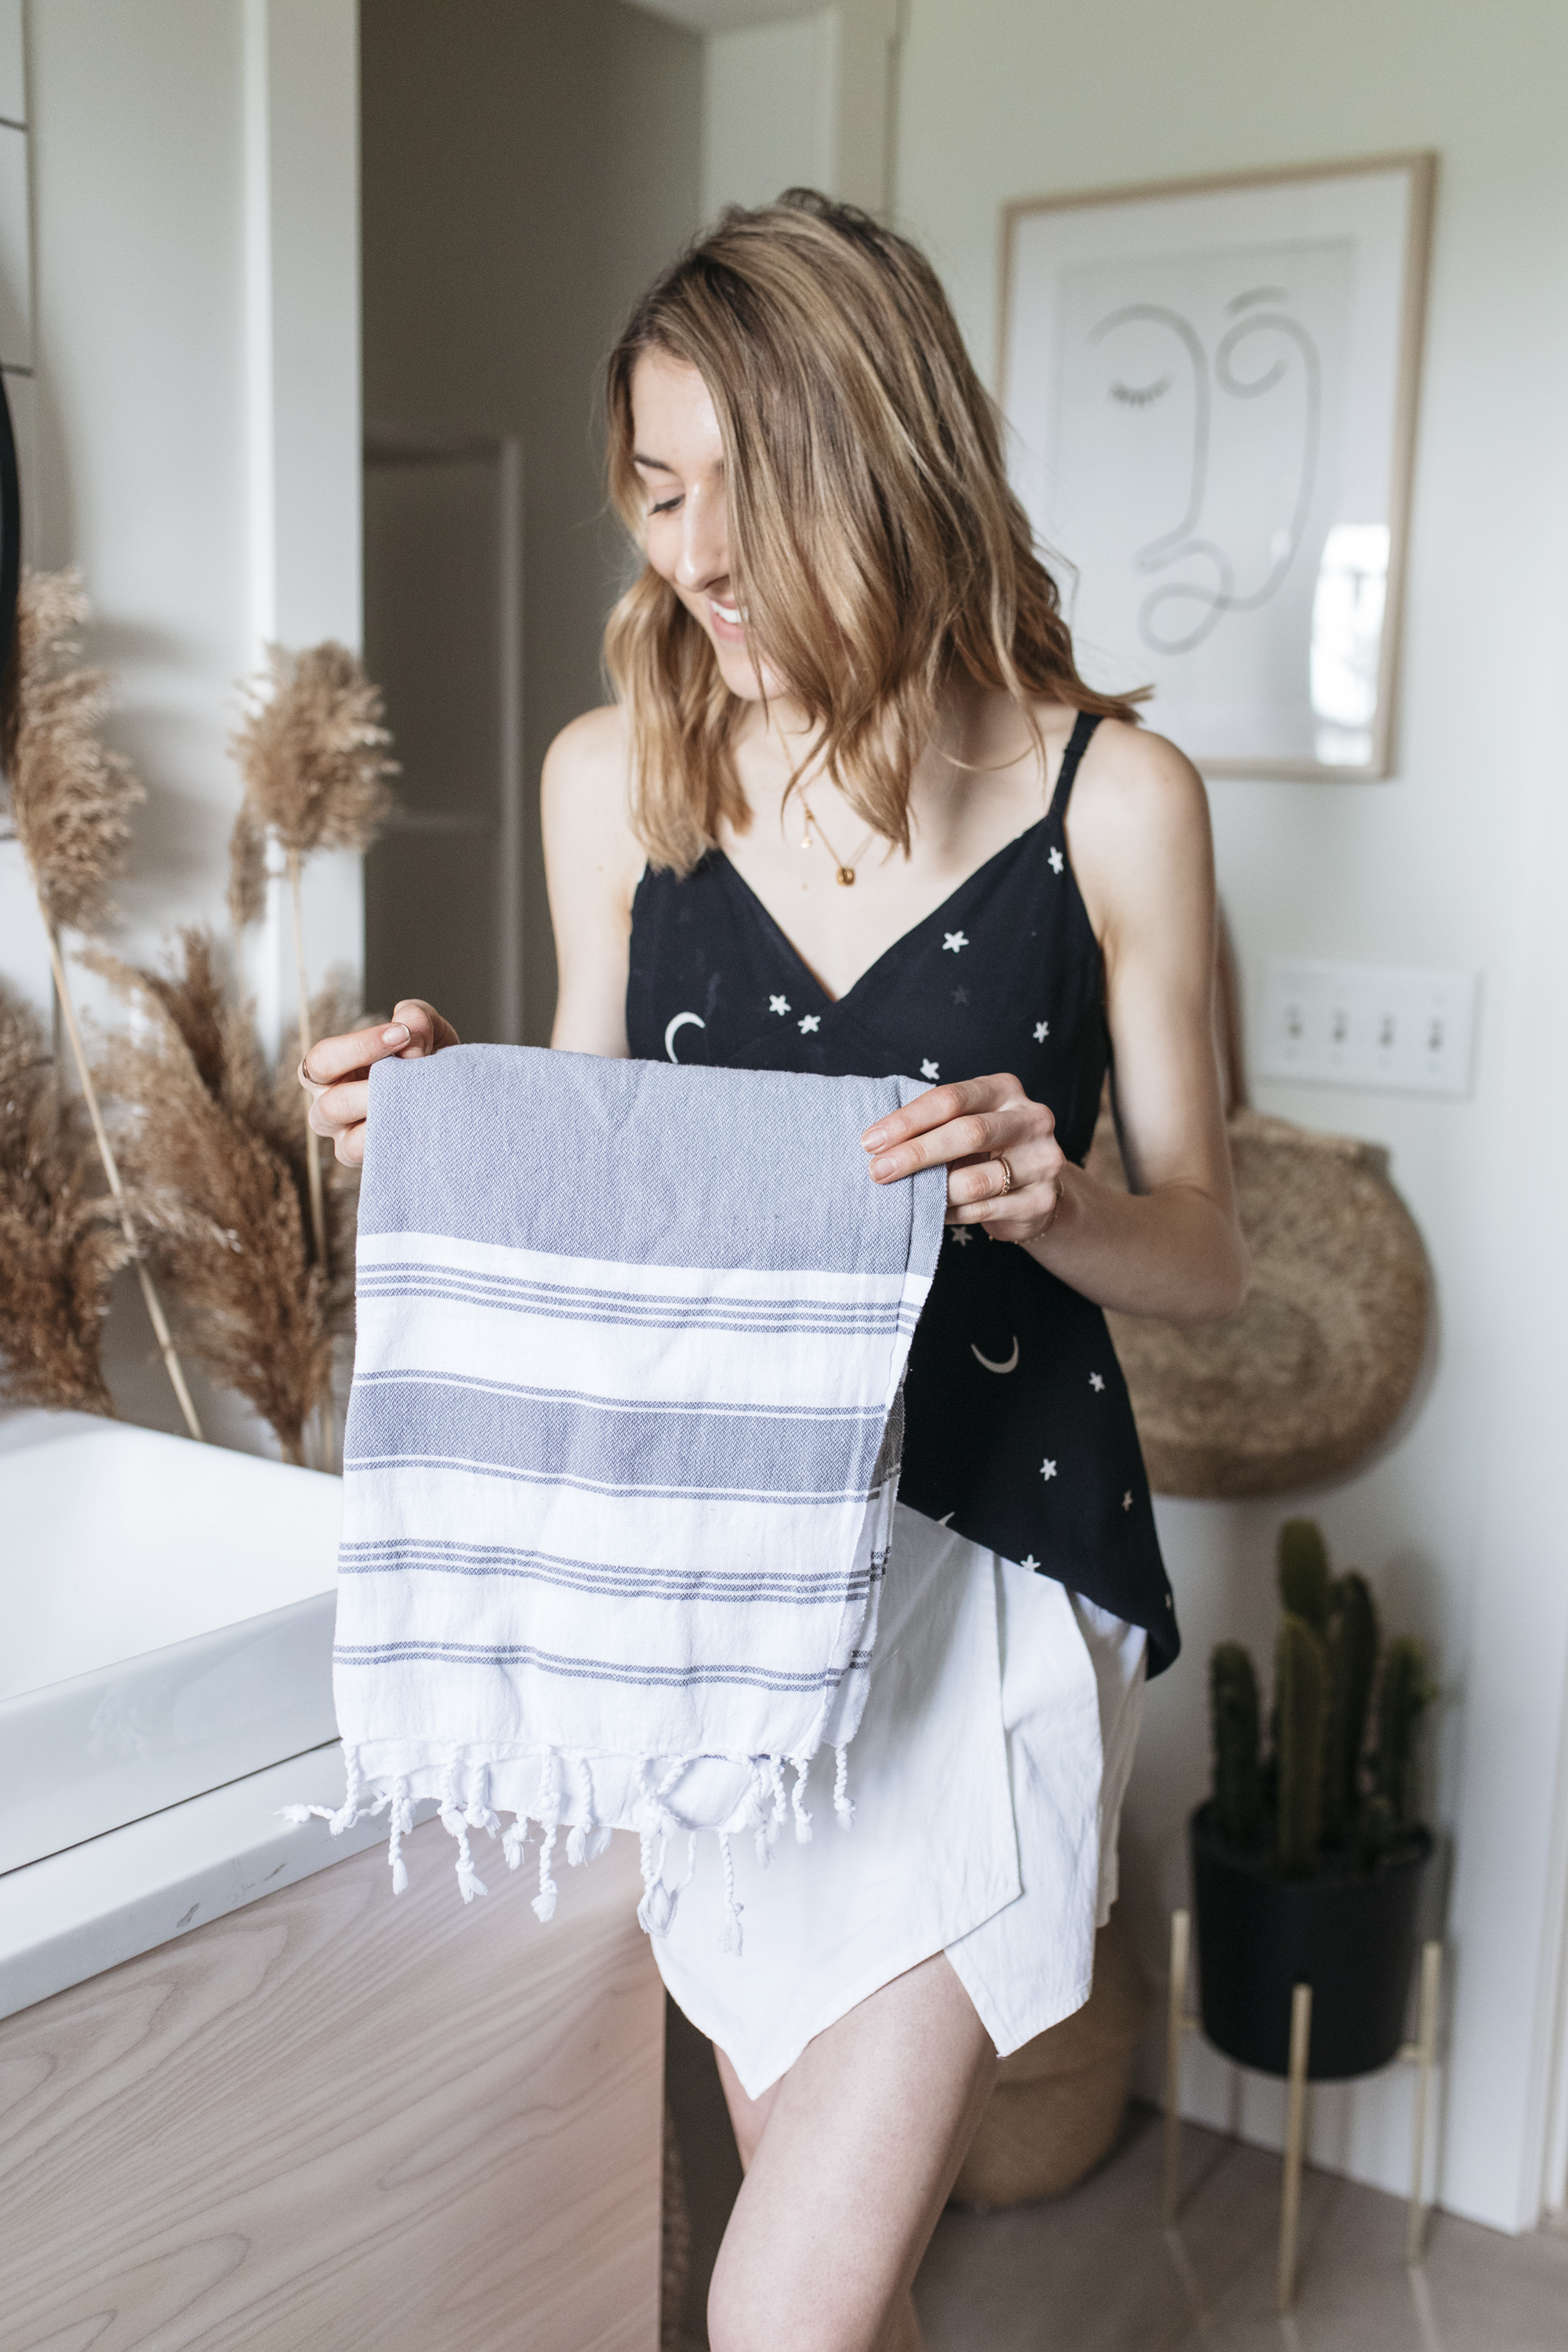 These towels are a creative and colorful touch to any bathroom. Simple with stripes, they bring definition to your sink